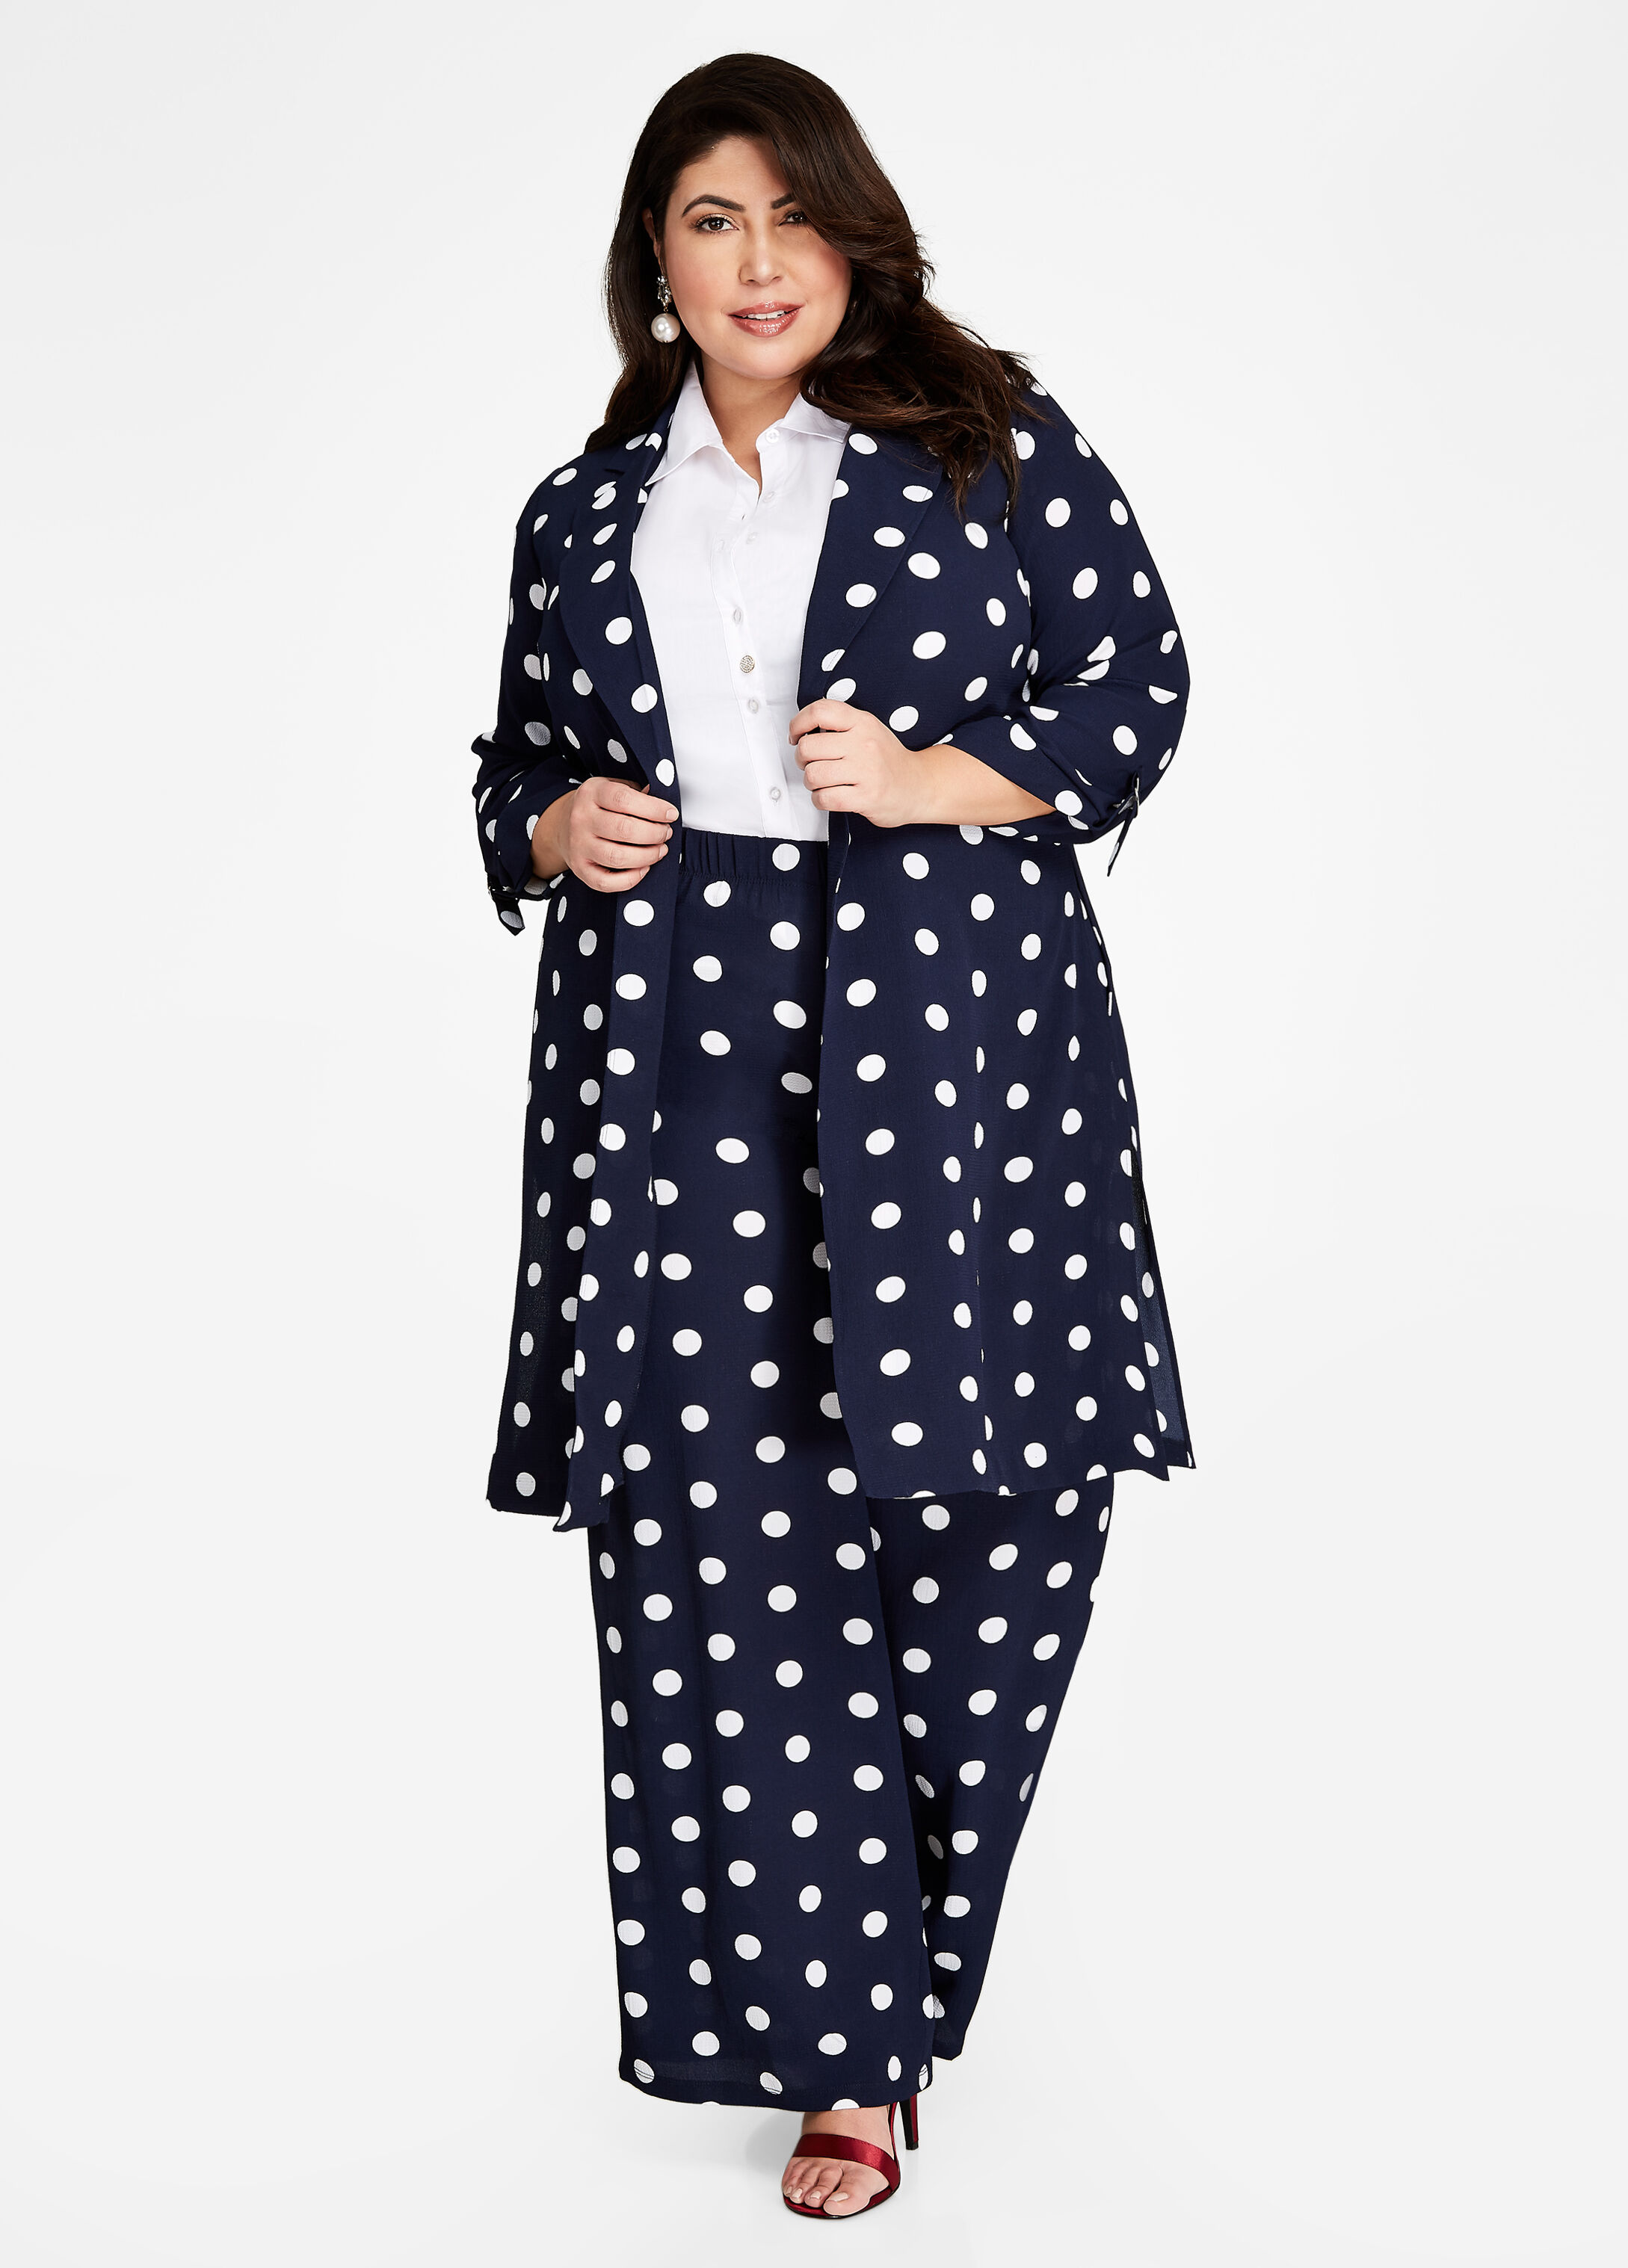 Plus Size Outfits - Polka Dot Duster and Palazzo Pant Set